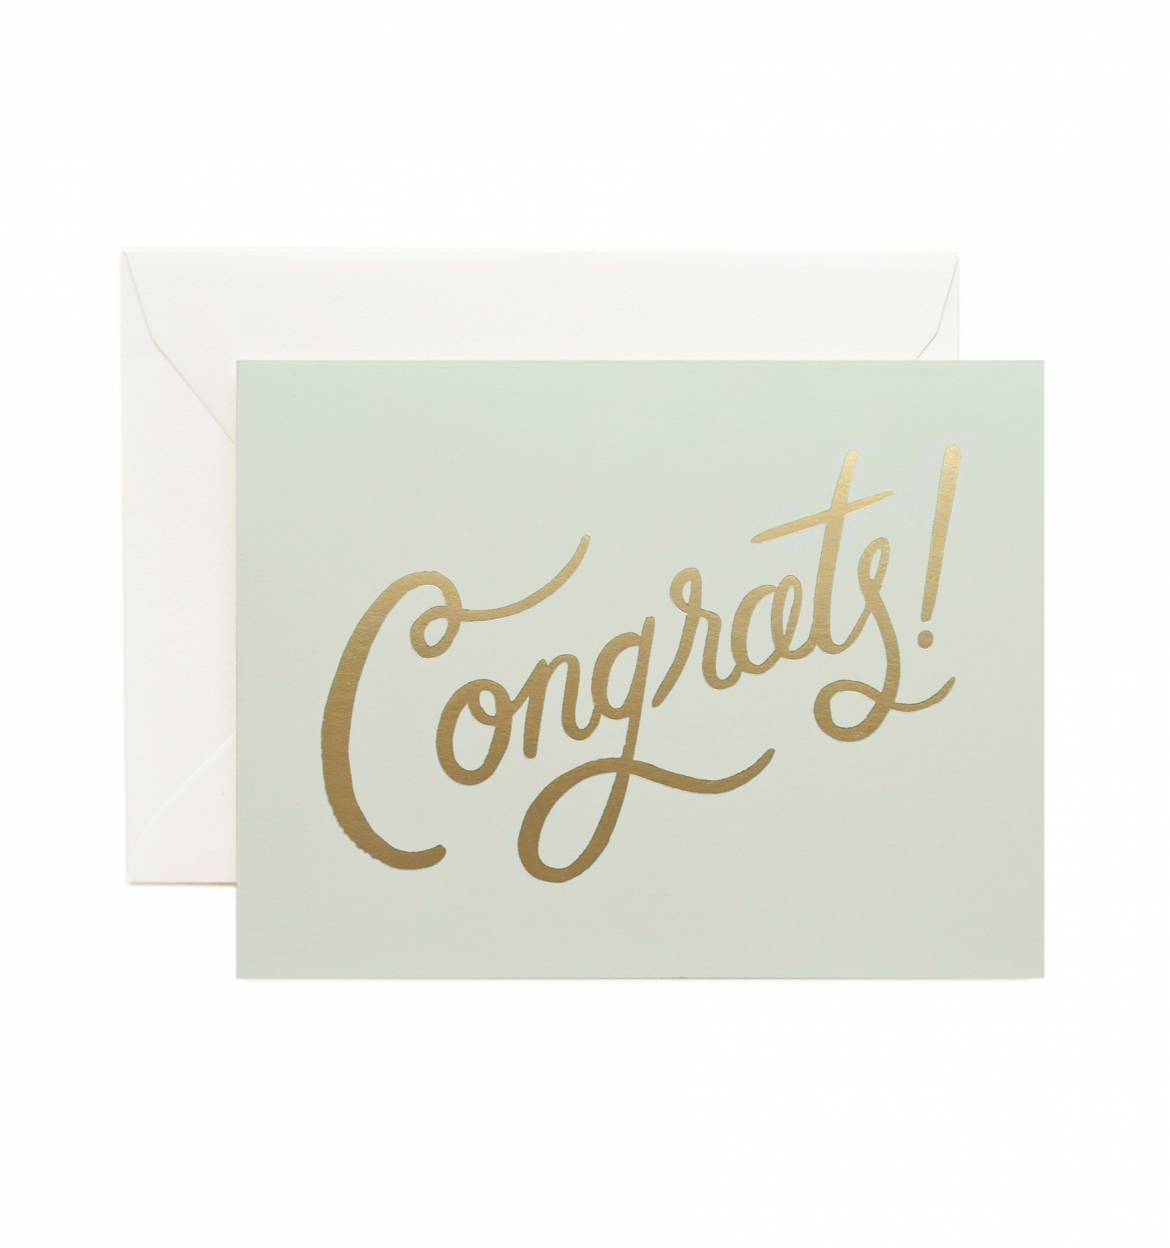 Congrats Card by Rifle Paper Co